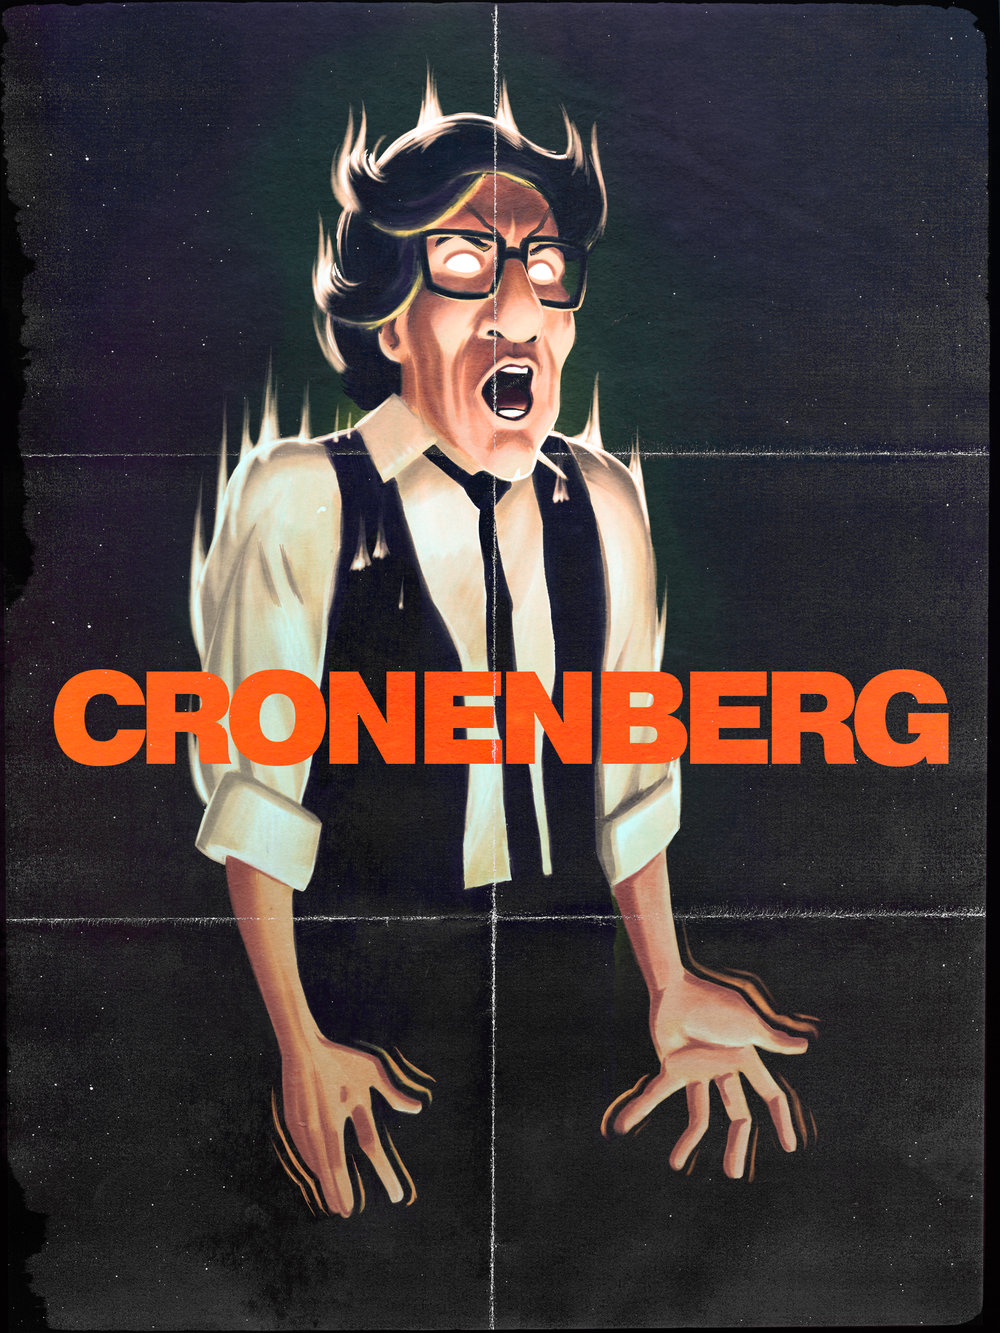 Cronenberg portrait by the always awesome Hugo Marmugi